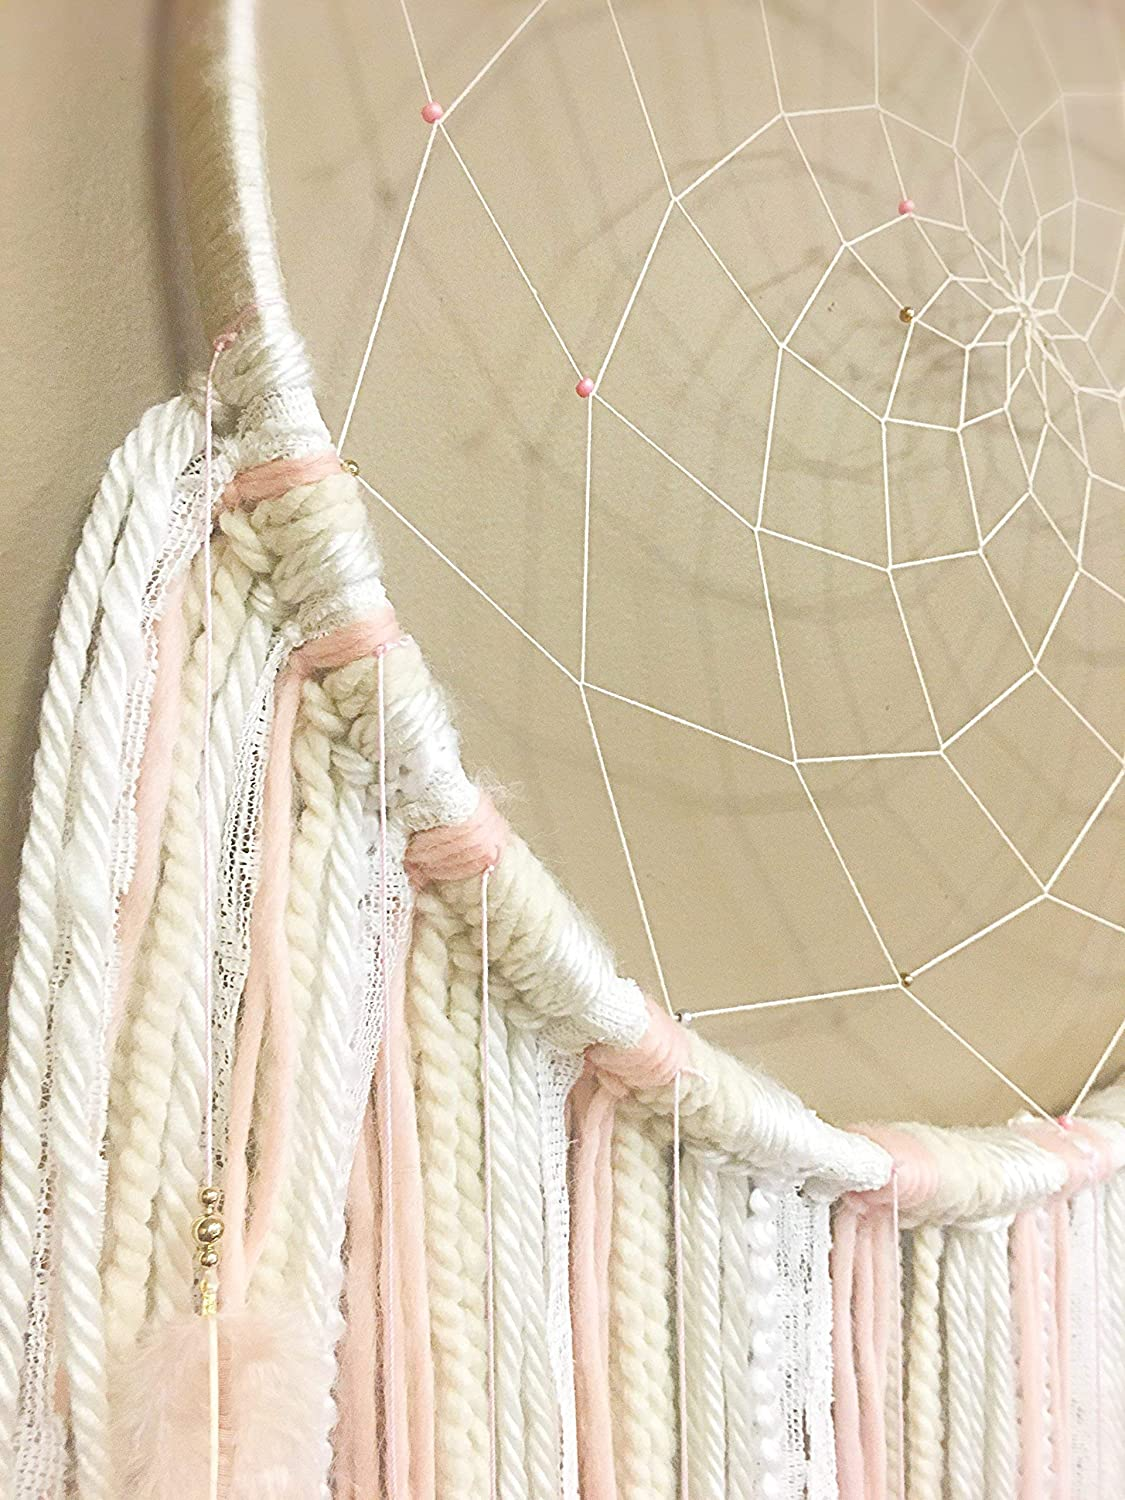 Boho Dream Catcher Large Dreamcatcher Bohemian Dreamcatcher Boho Home Decor Nursery Decor Blush Wallhanging XL Dreamcatcher Pink Dreamcatcher